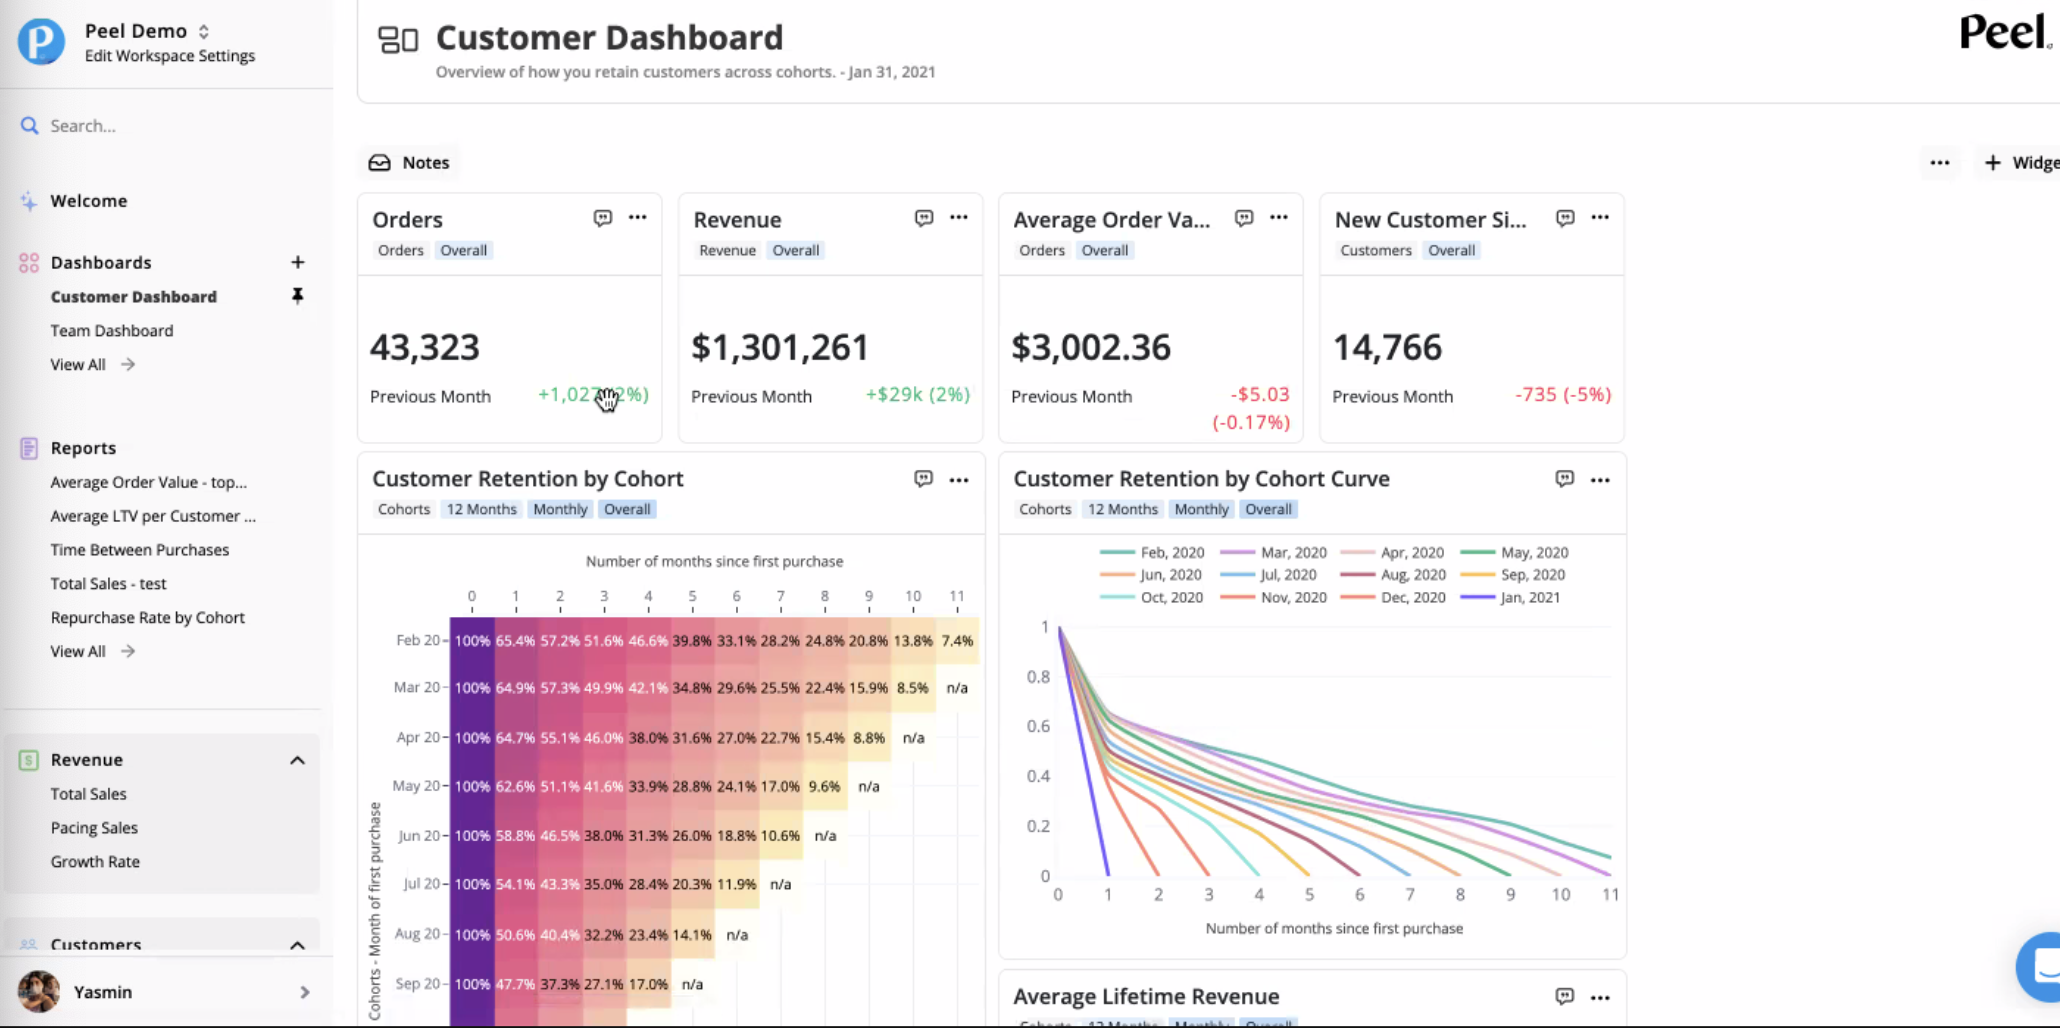 Peel Insights Customer Dashboard